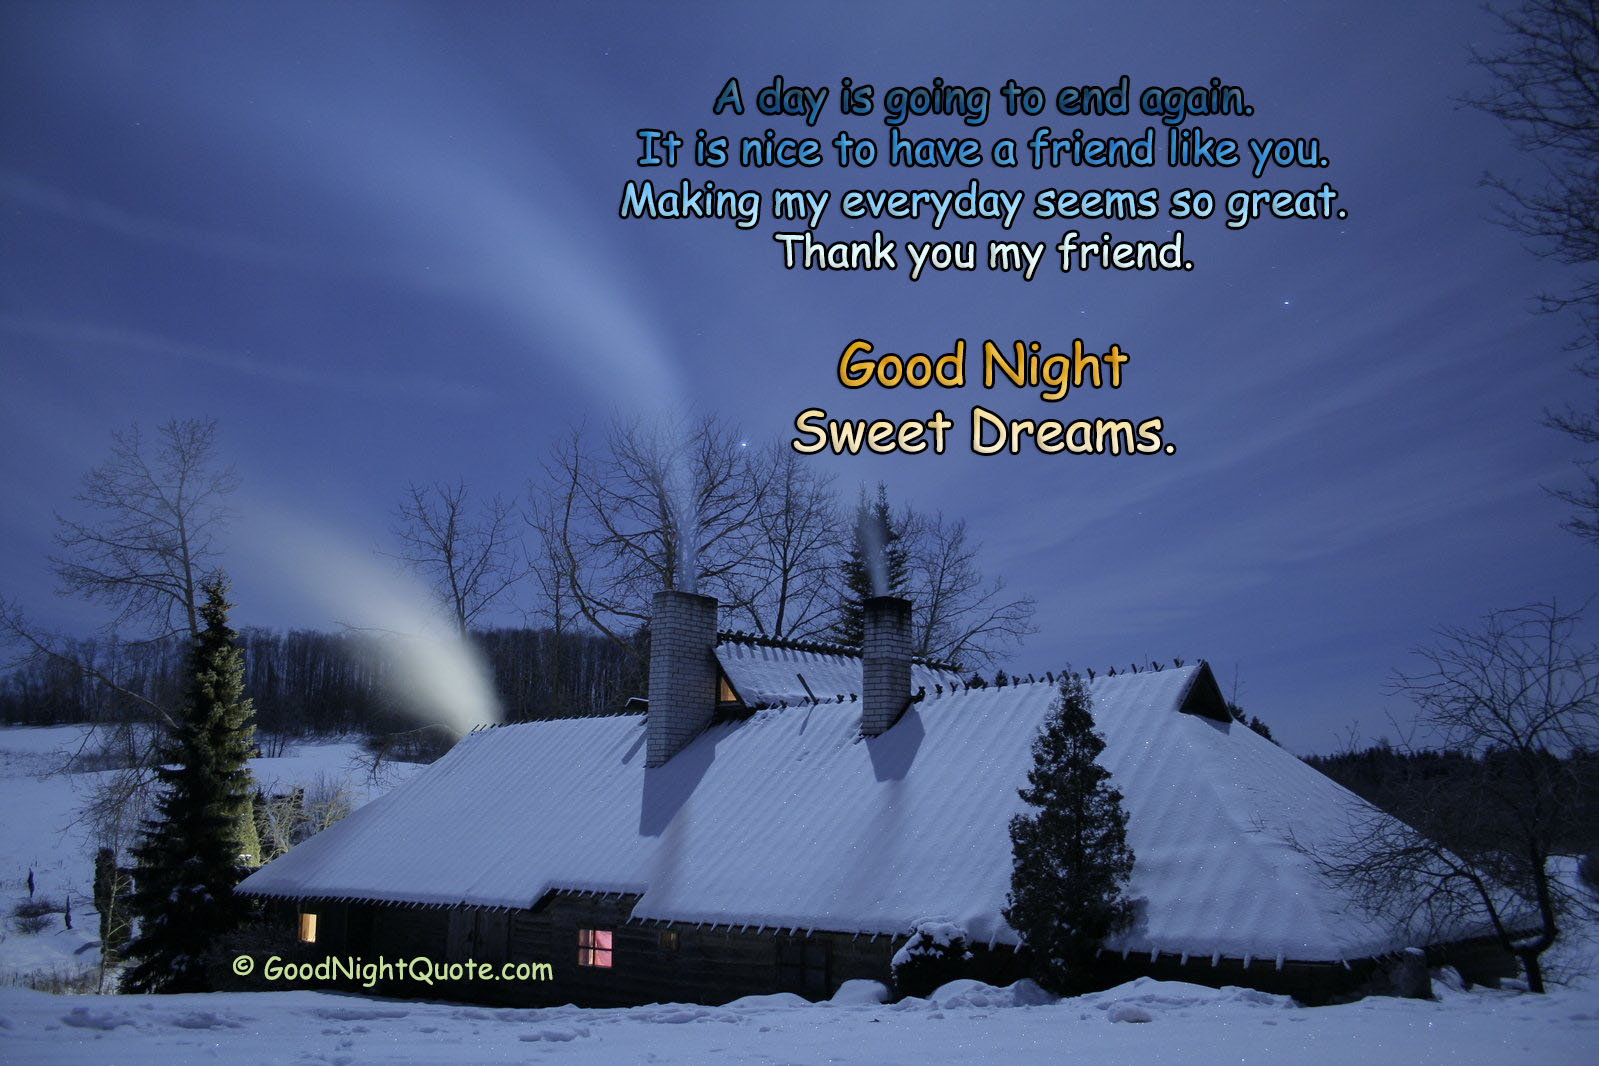 Good Night Friendship Quote - Winter Night